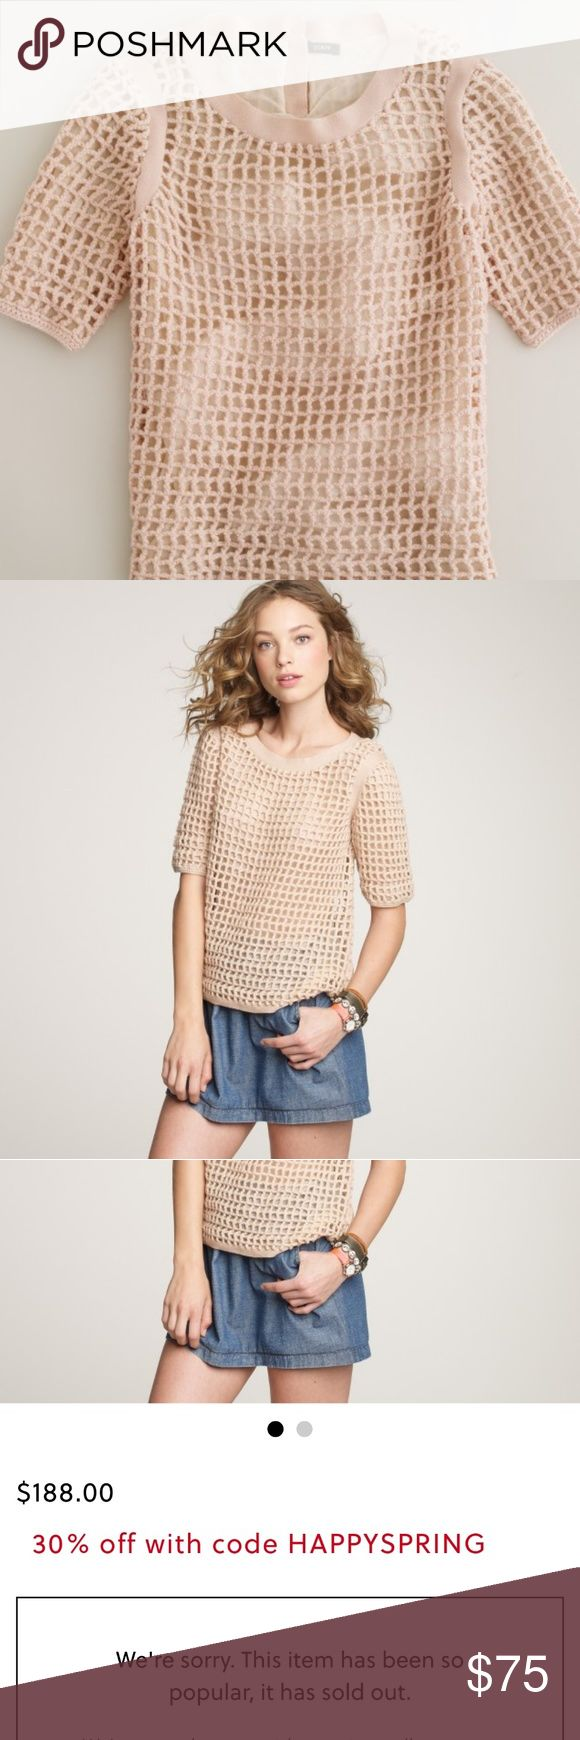 One day sale Sold Out JCrew Carrie crochet sweater In perfect condition J. Crew Tops